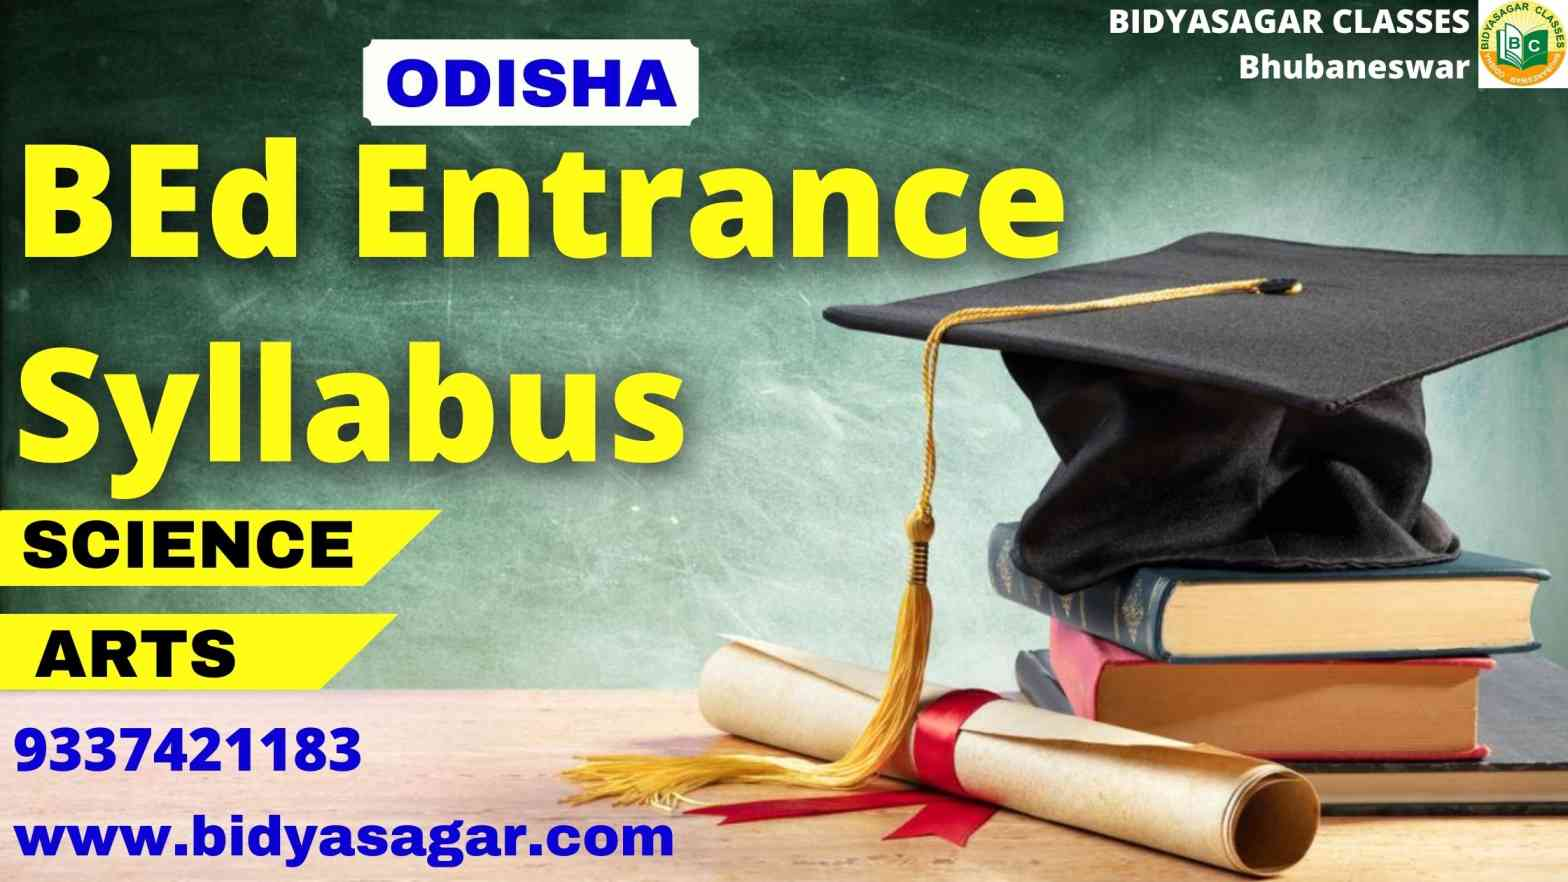 Odisha State B.Ed Entrance Exam 2021 Syllabus